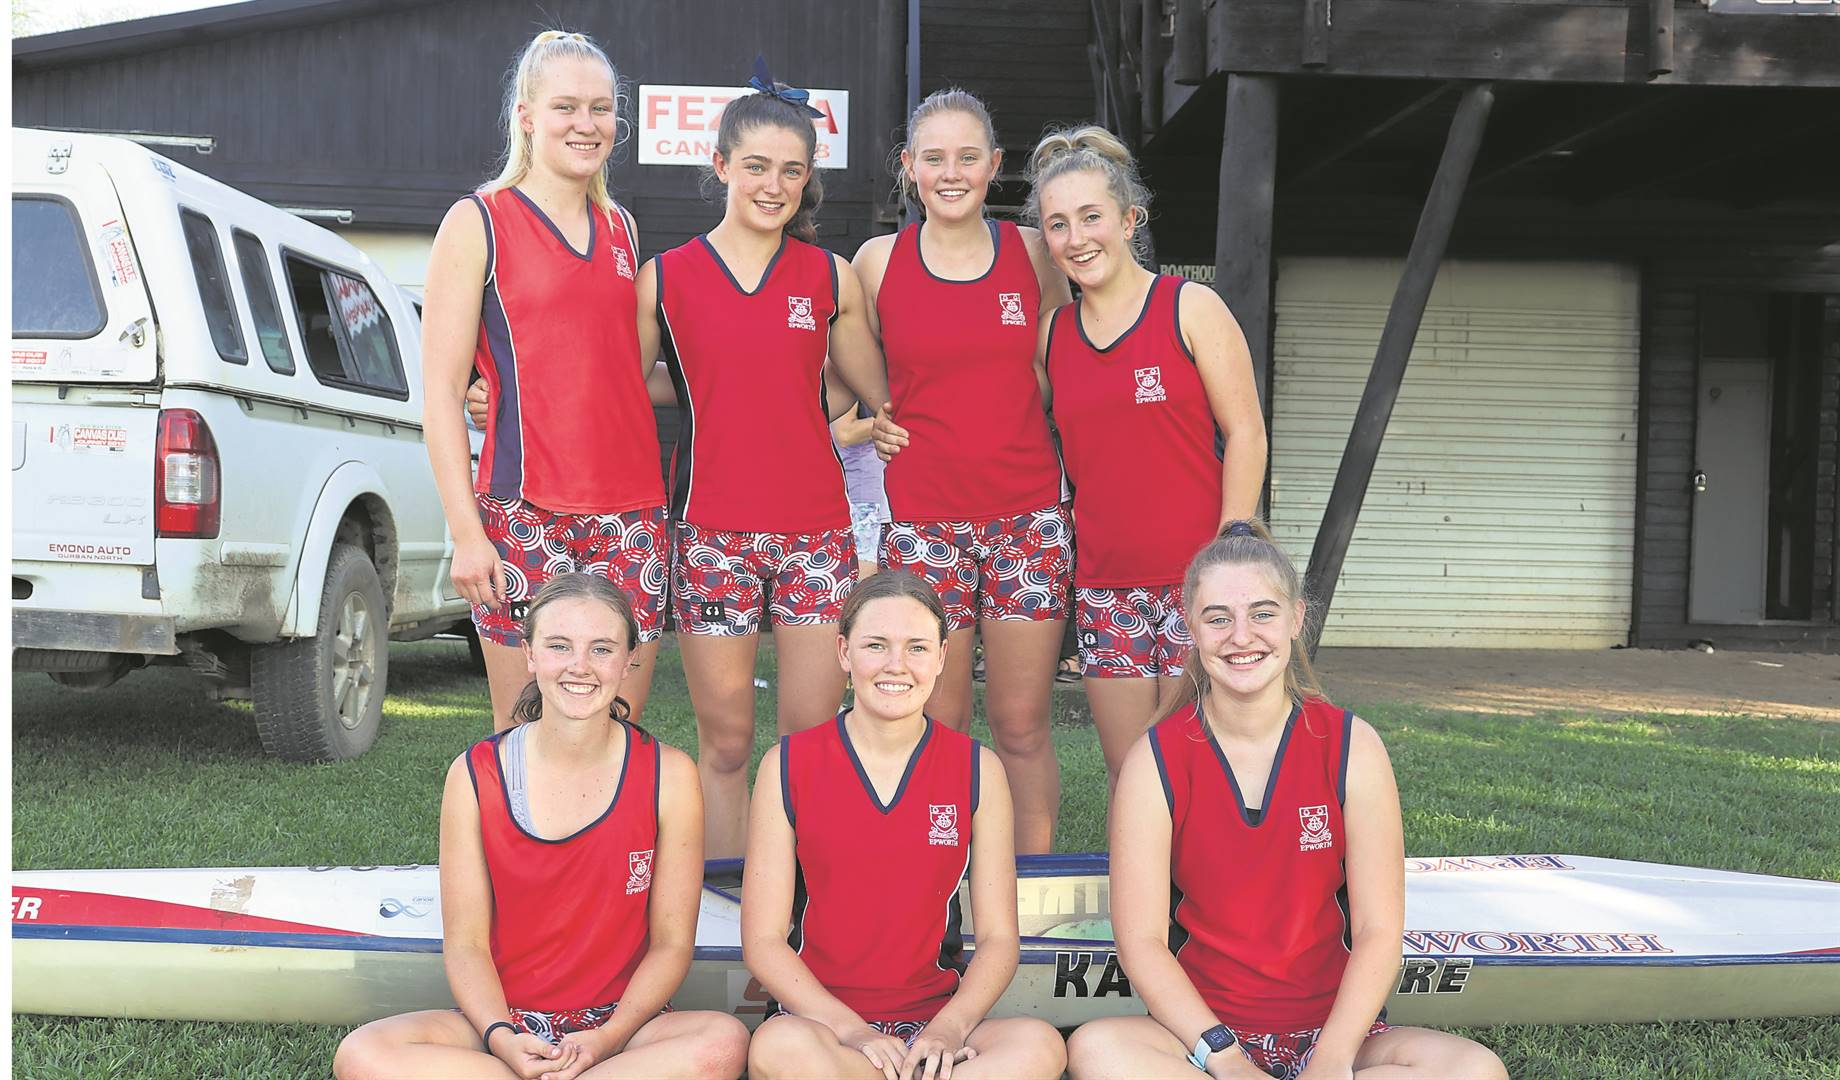 Seven Epworth pupils successfully completed the three-day Dusi Canoe Marathon. Canoeists are (back, from left) Shannon-Ann Parker-Dennison, Frances Forsyth, Lizanne Conradie, Abbigale van Rooyen with (front, from left) Georgina Howard, Robin van Heerden and Emma Maritz.PHOTO: SUPPLIED